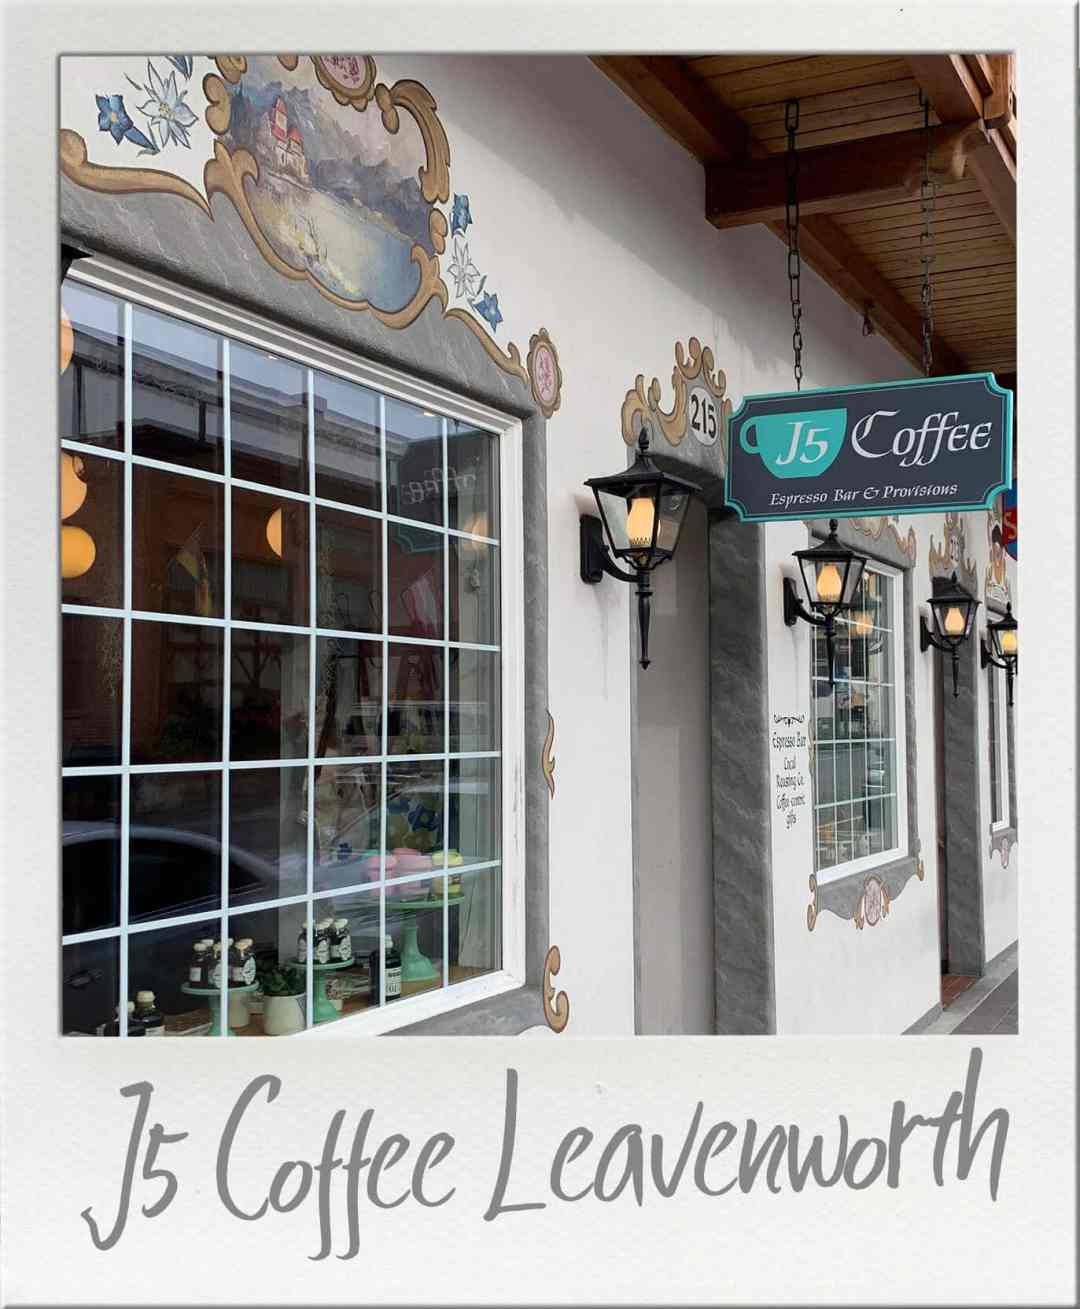 J5 Coffee in Leavenworth Washington Storefront